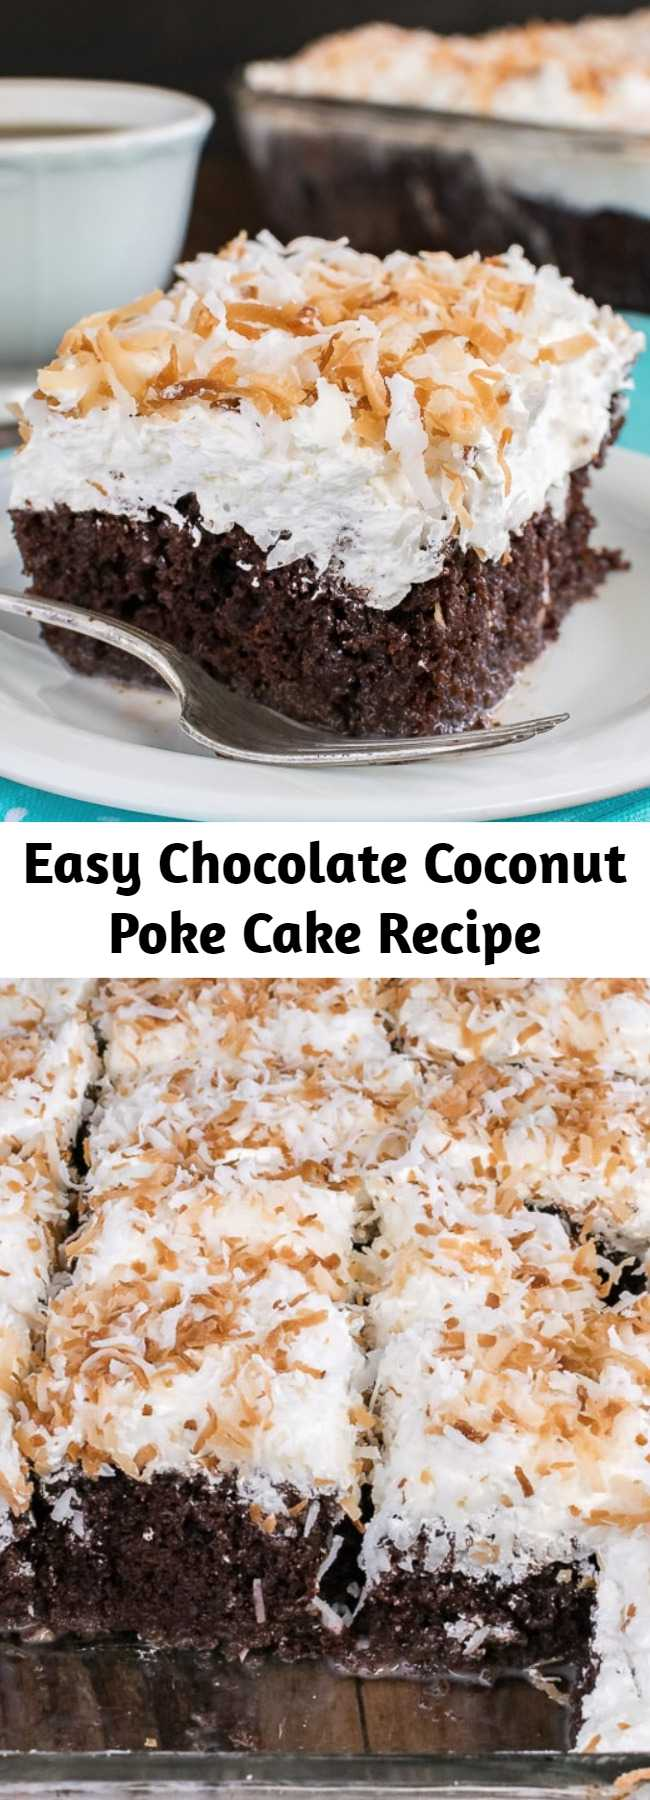 Easy Chocolate Coconut Poke Cake Recipe - This creamy Chocolate Coconut Poke Cake will get rave reviews from the coconut lovers in your life.  Make a pan and watch it disappear!